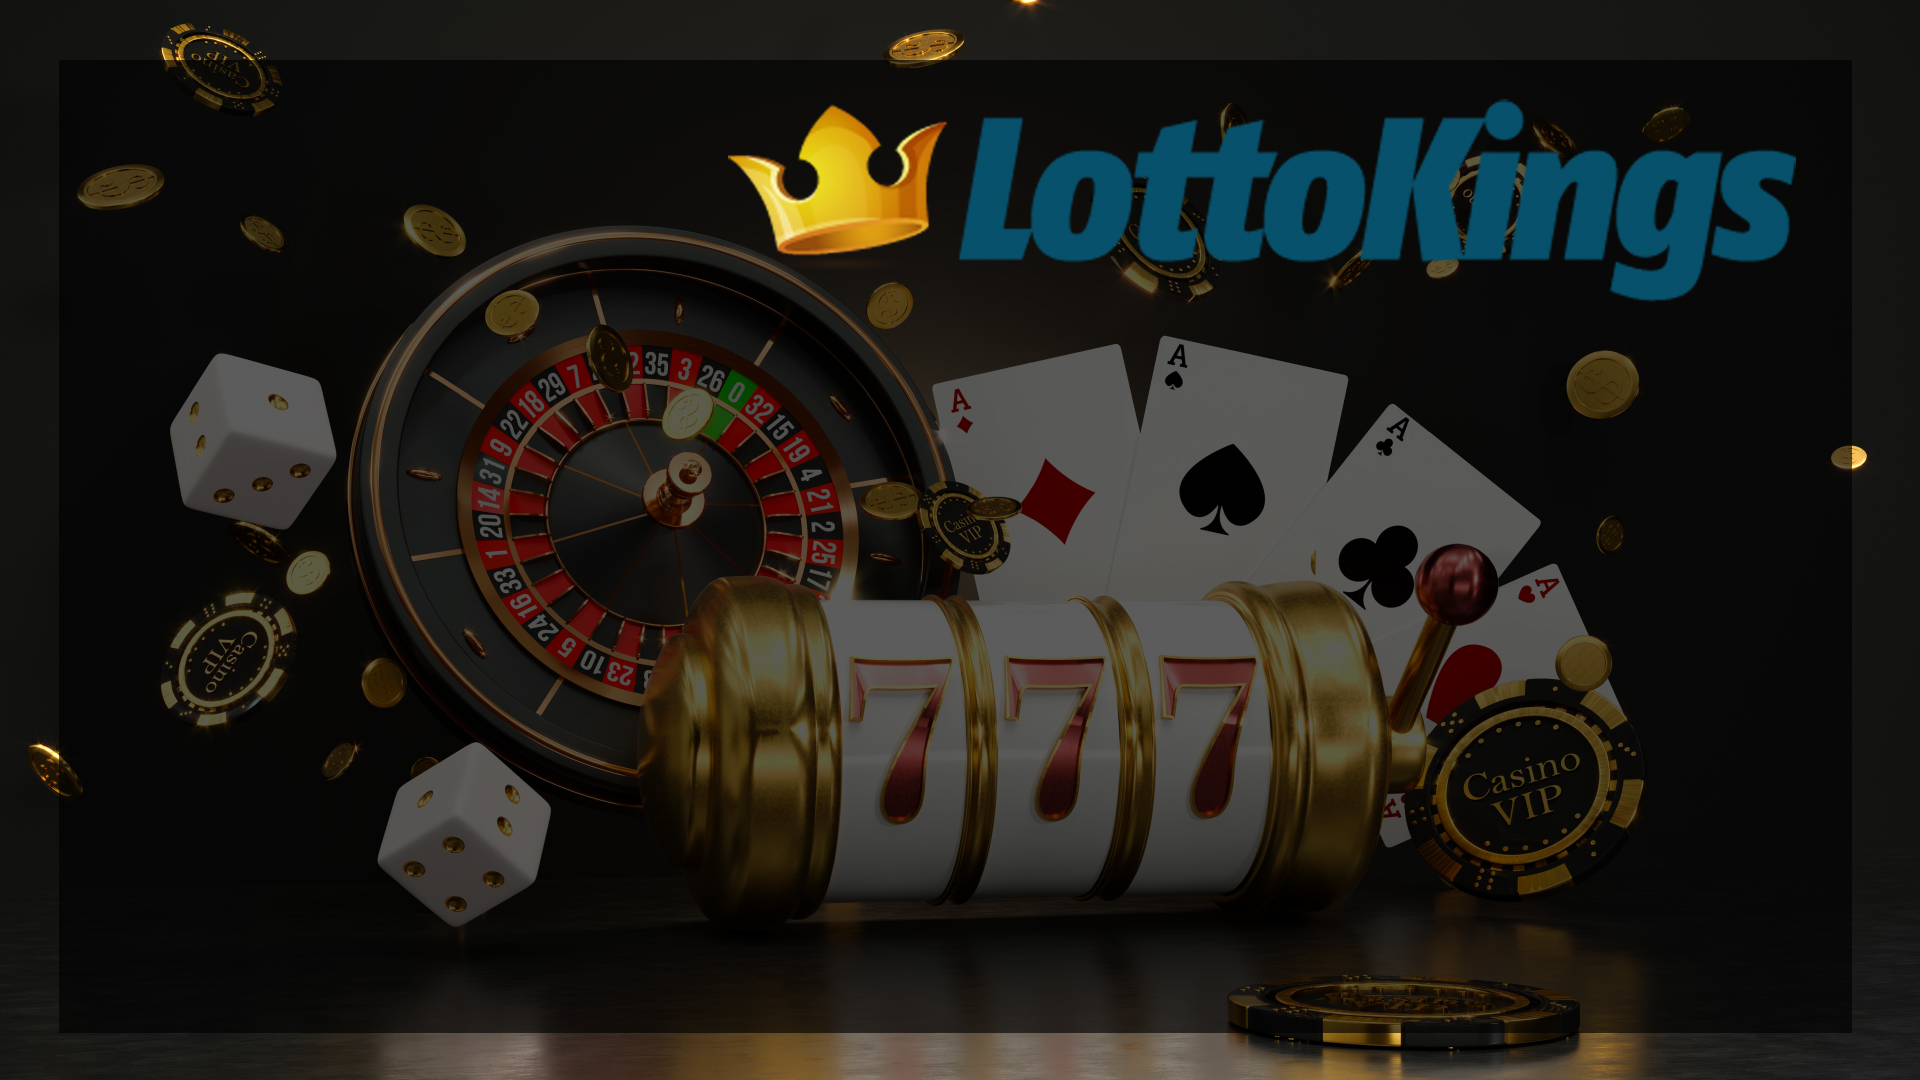 LottoKings promotion gives you 40% off on MegaMillions tickets and 50% off on the Powerball tickets.